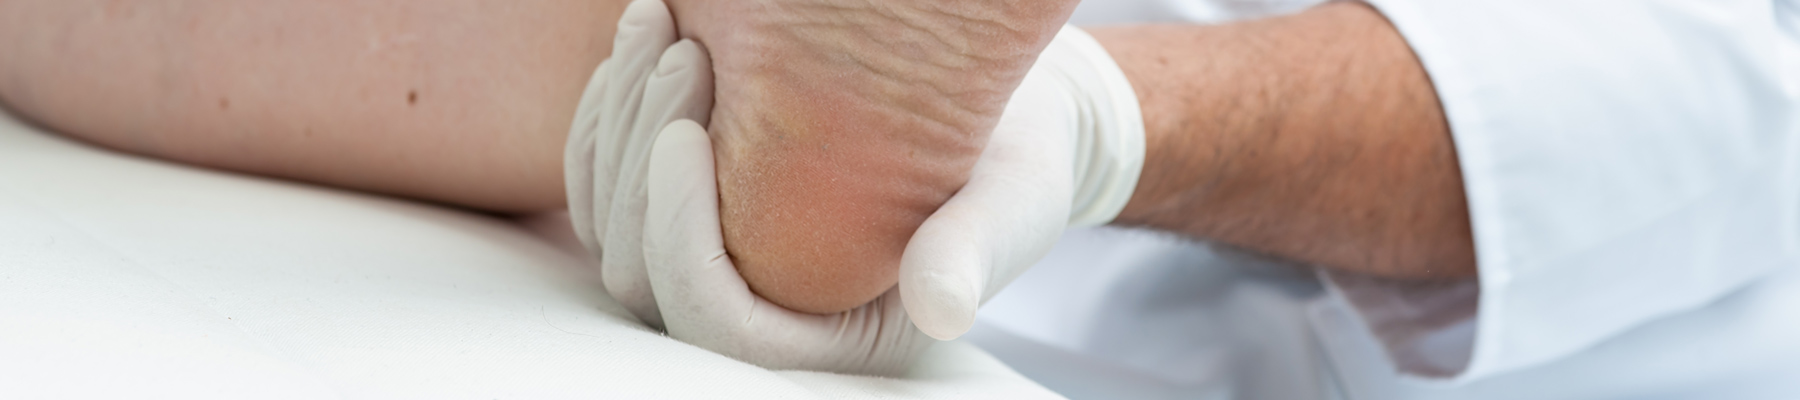 Podiatrist and Foot Calgary